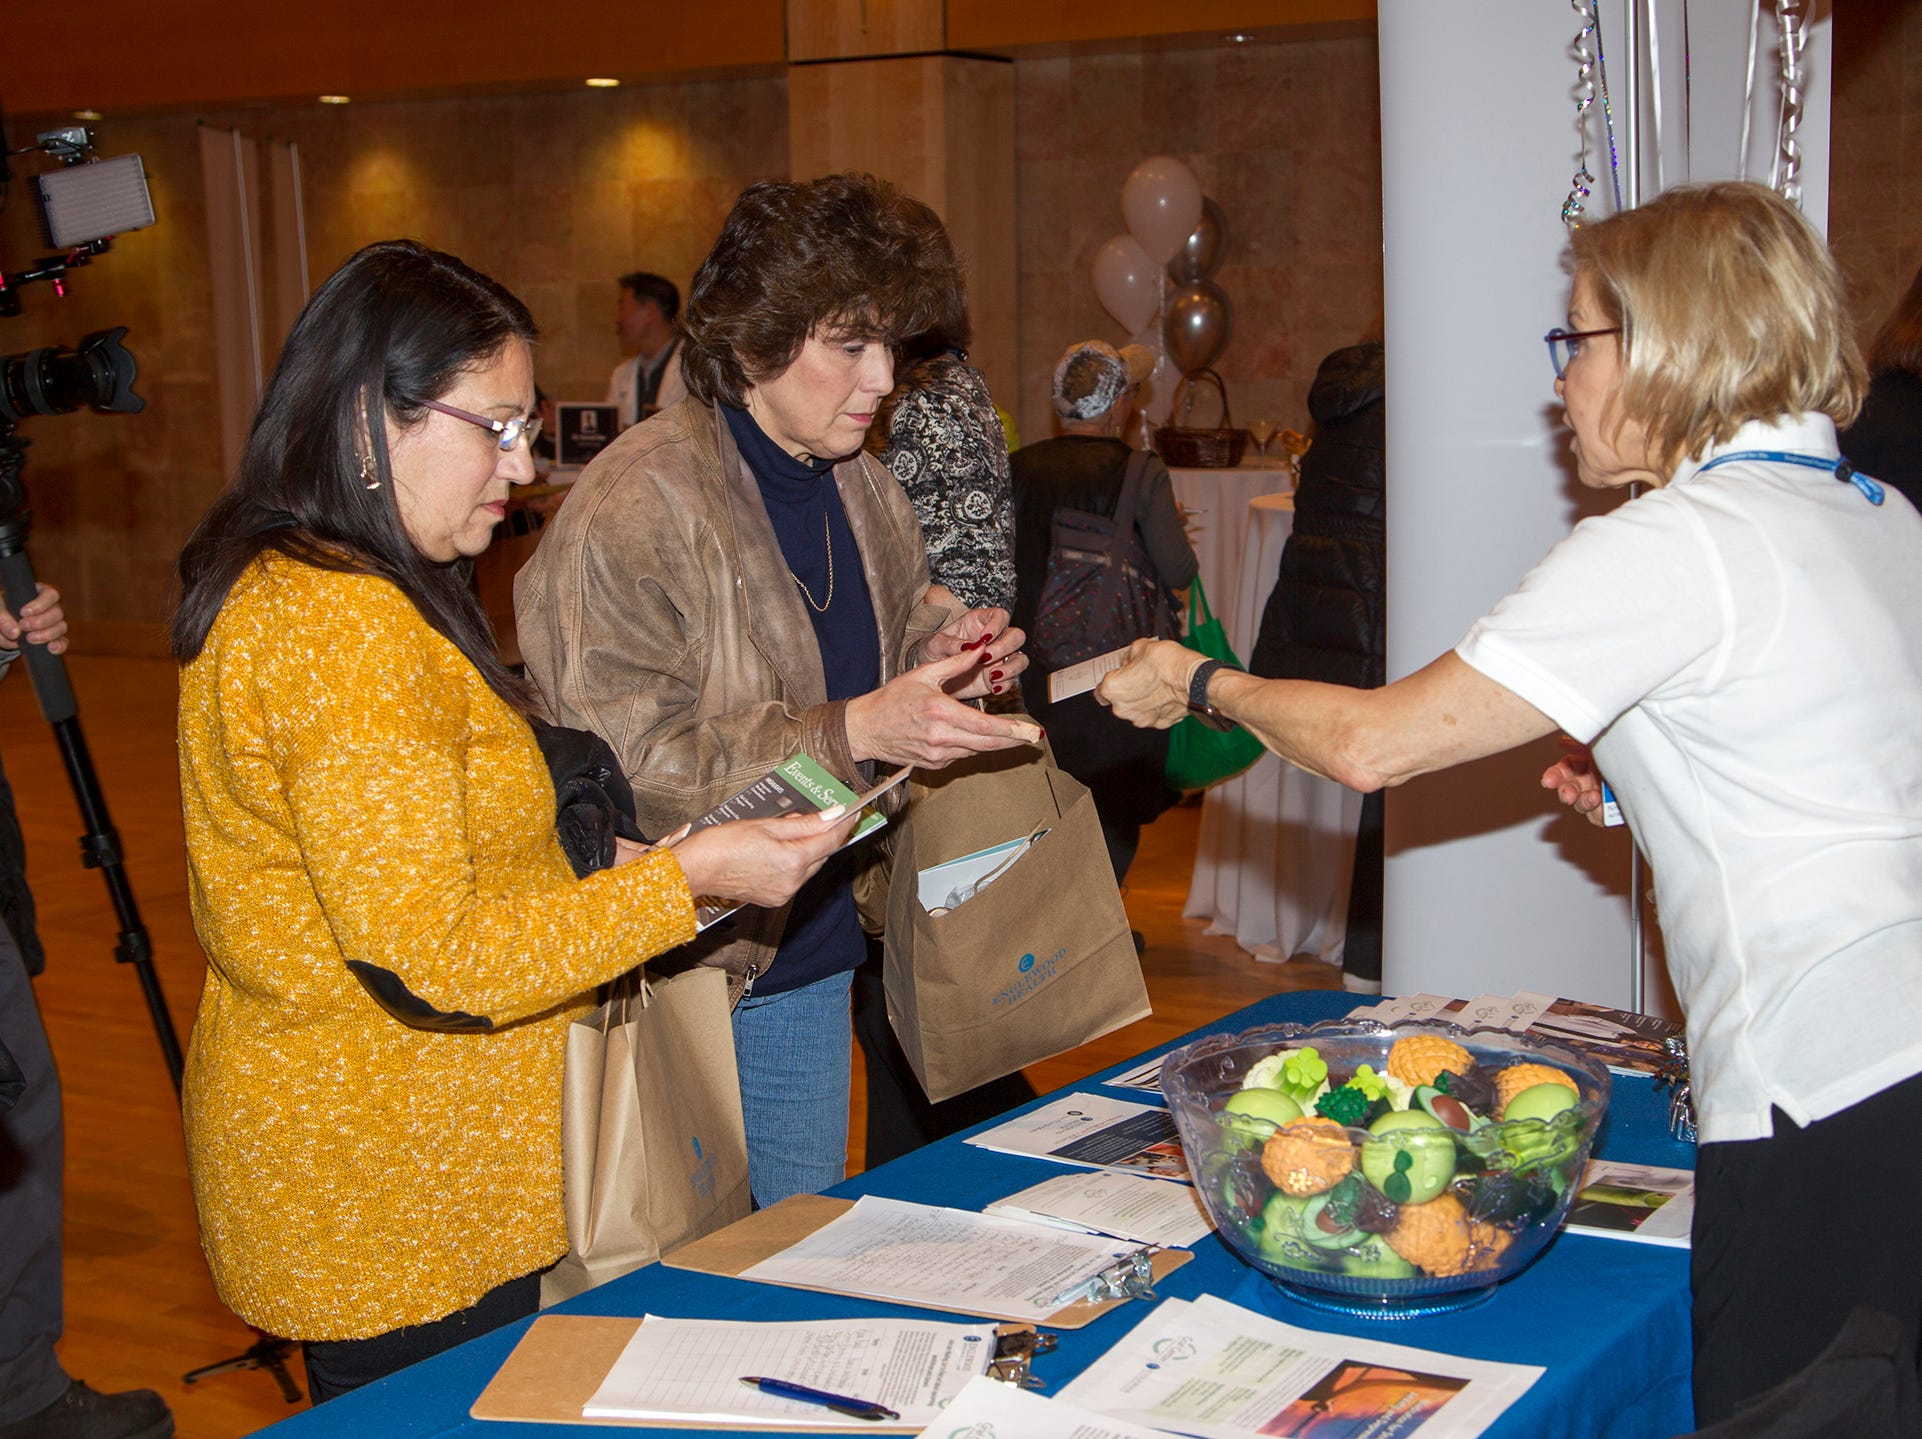 Englewood Health and Kaplen JCC on the Palisades sponsored a Mind, Body, & Sole - a women's health & fitness social night at Kaplen JCC on the Palisades in Tenafly.02/13/2019